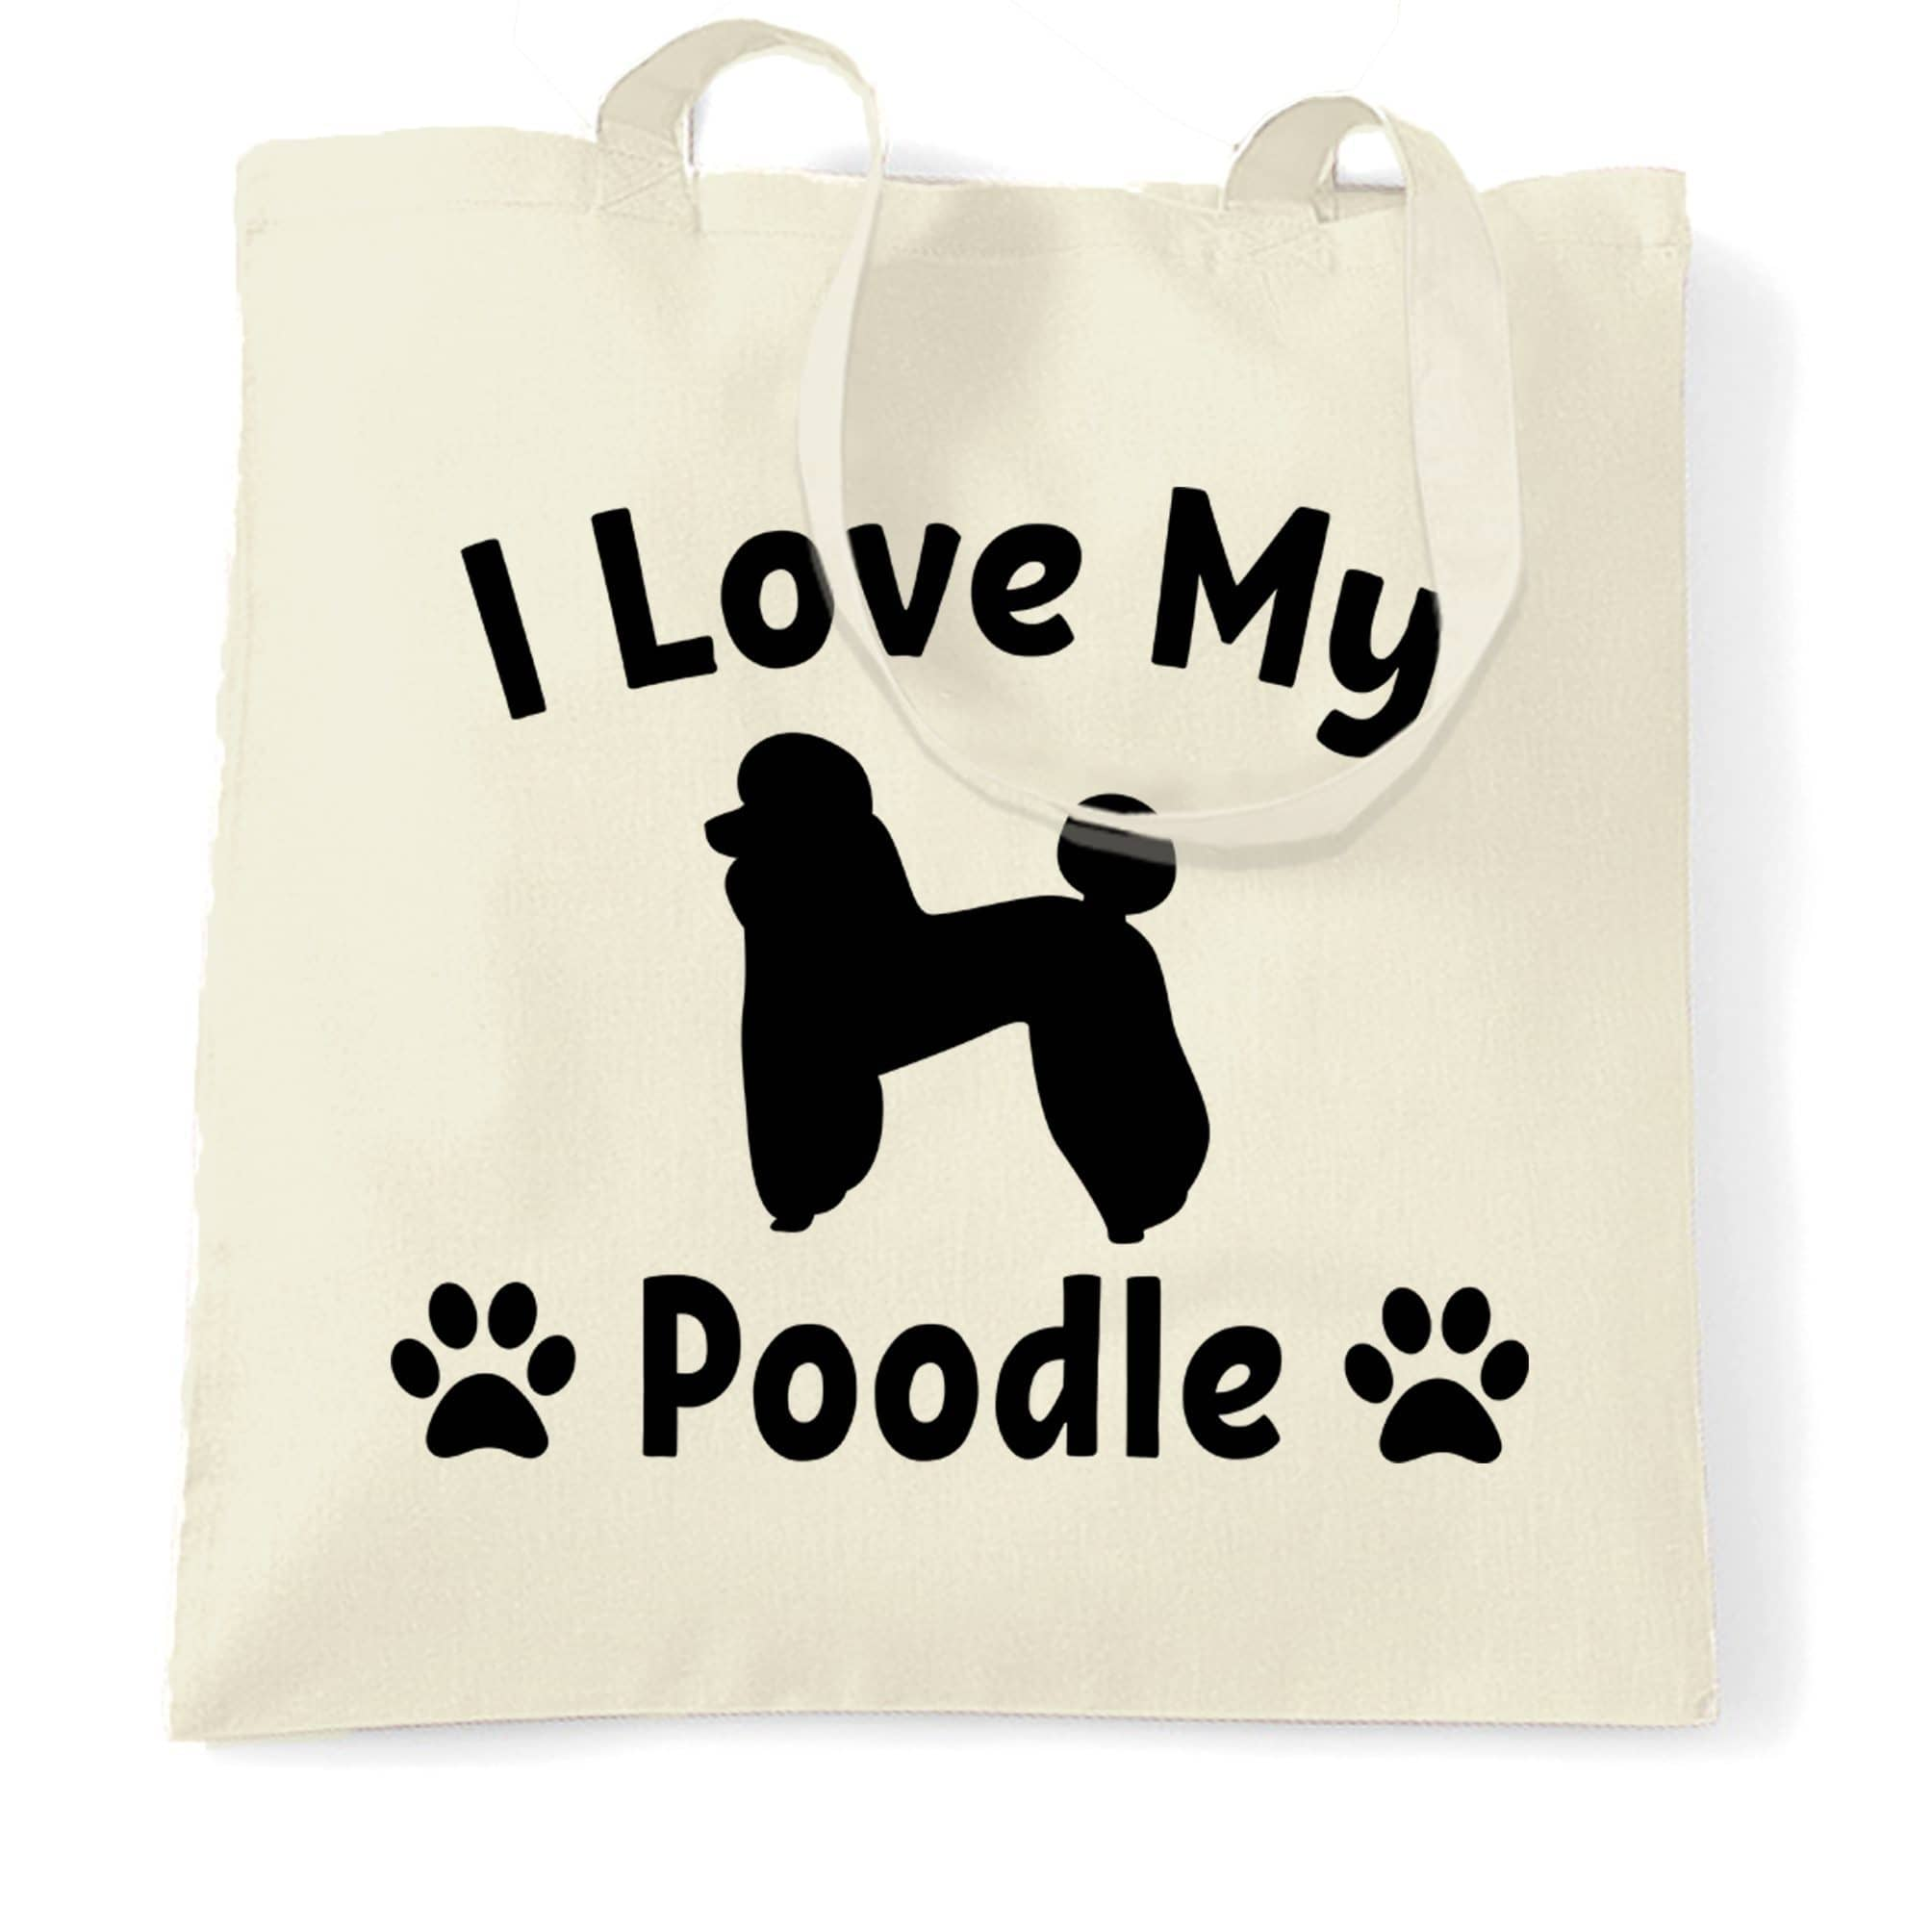 Dog Owner Tote Bag I Love My Poodle Slogan